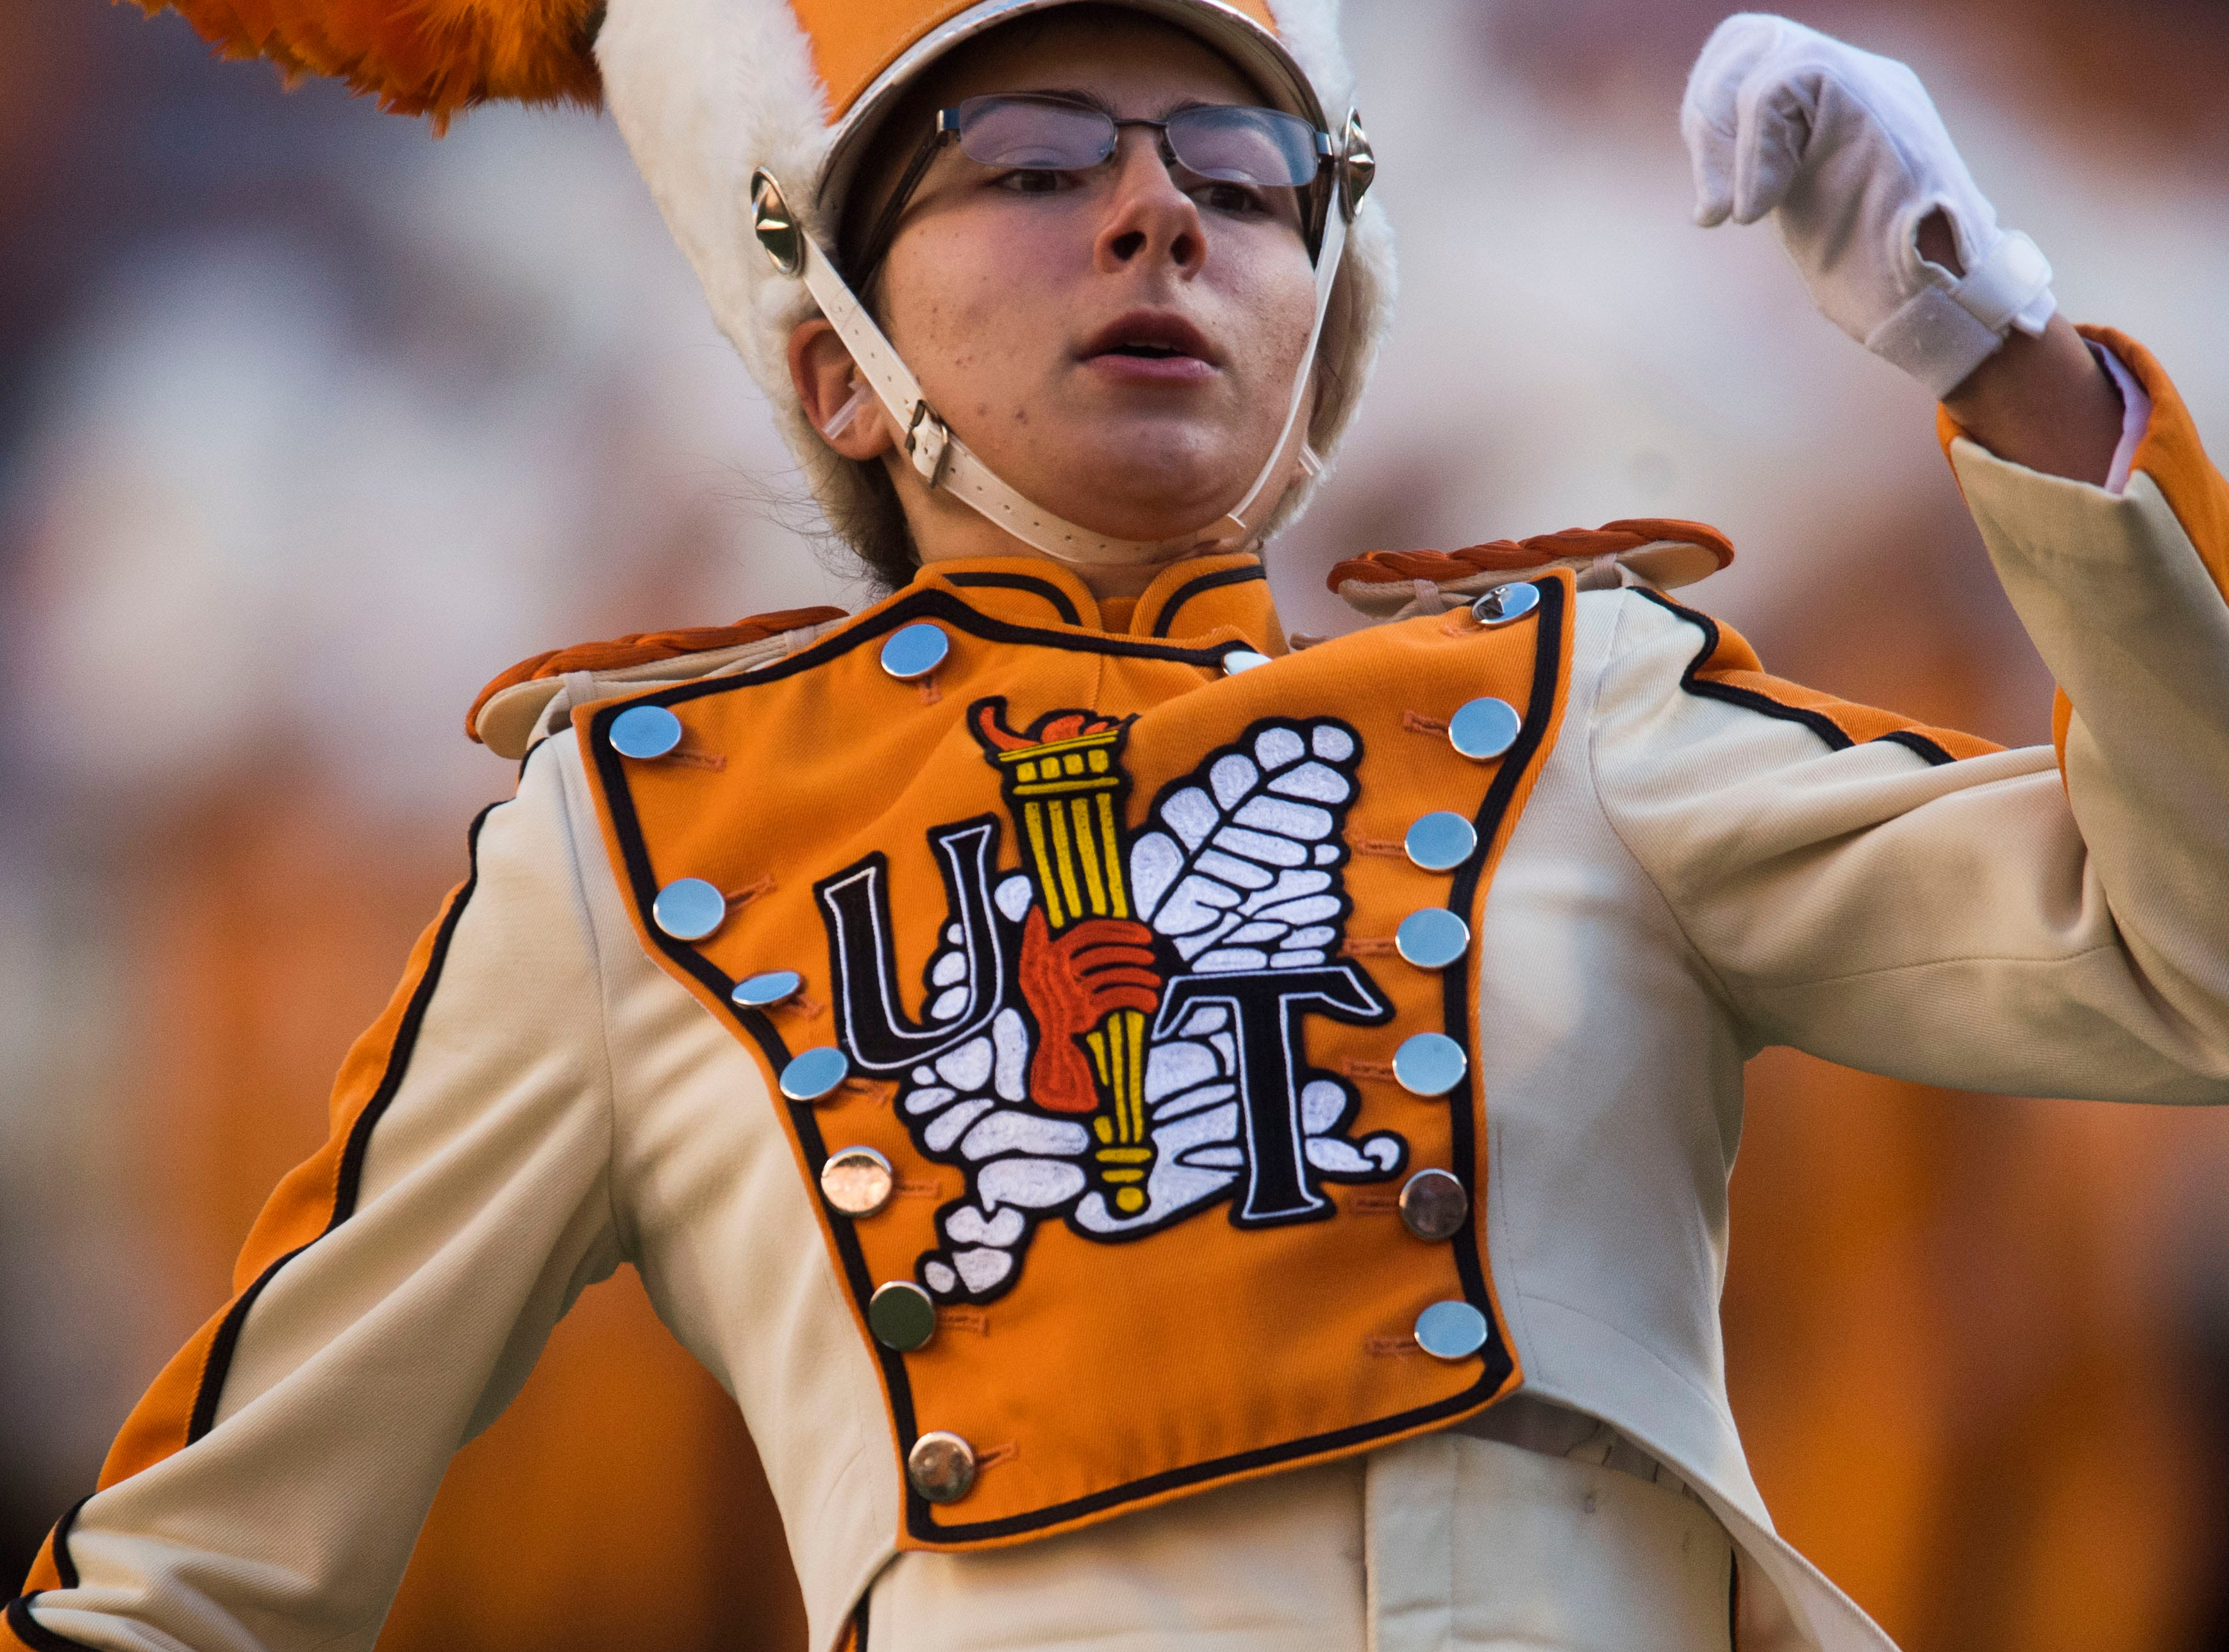 The Pride of the Southland drum major struts on the field during the homecoming game between Tennessee and Charlotte outside of Neyland Stadium Saturday, Nov. 3, 2018.